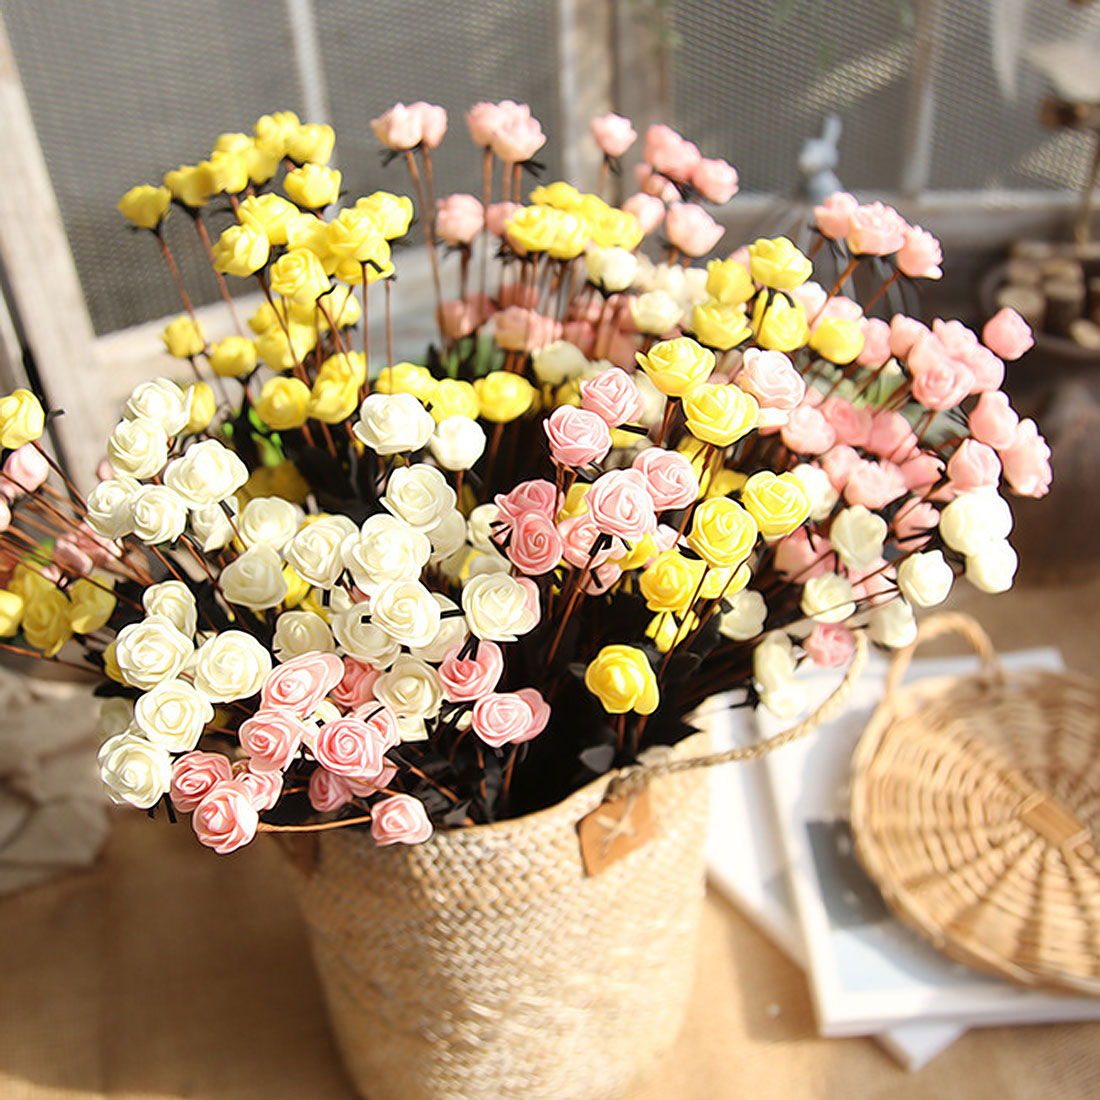 Good Quality Artificial Flowers 15 Heads Fake Flower Rose Head